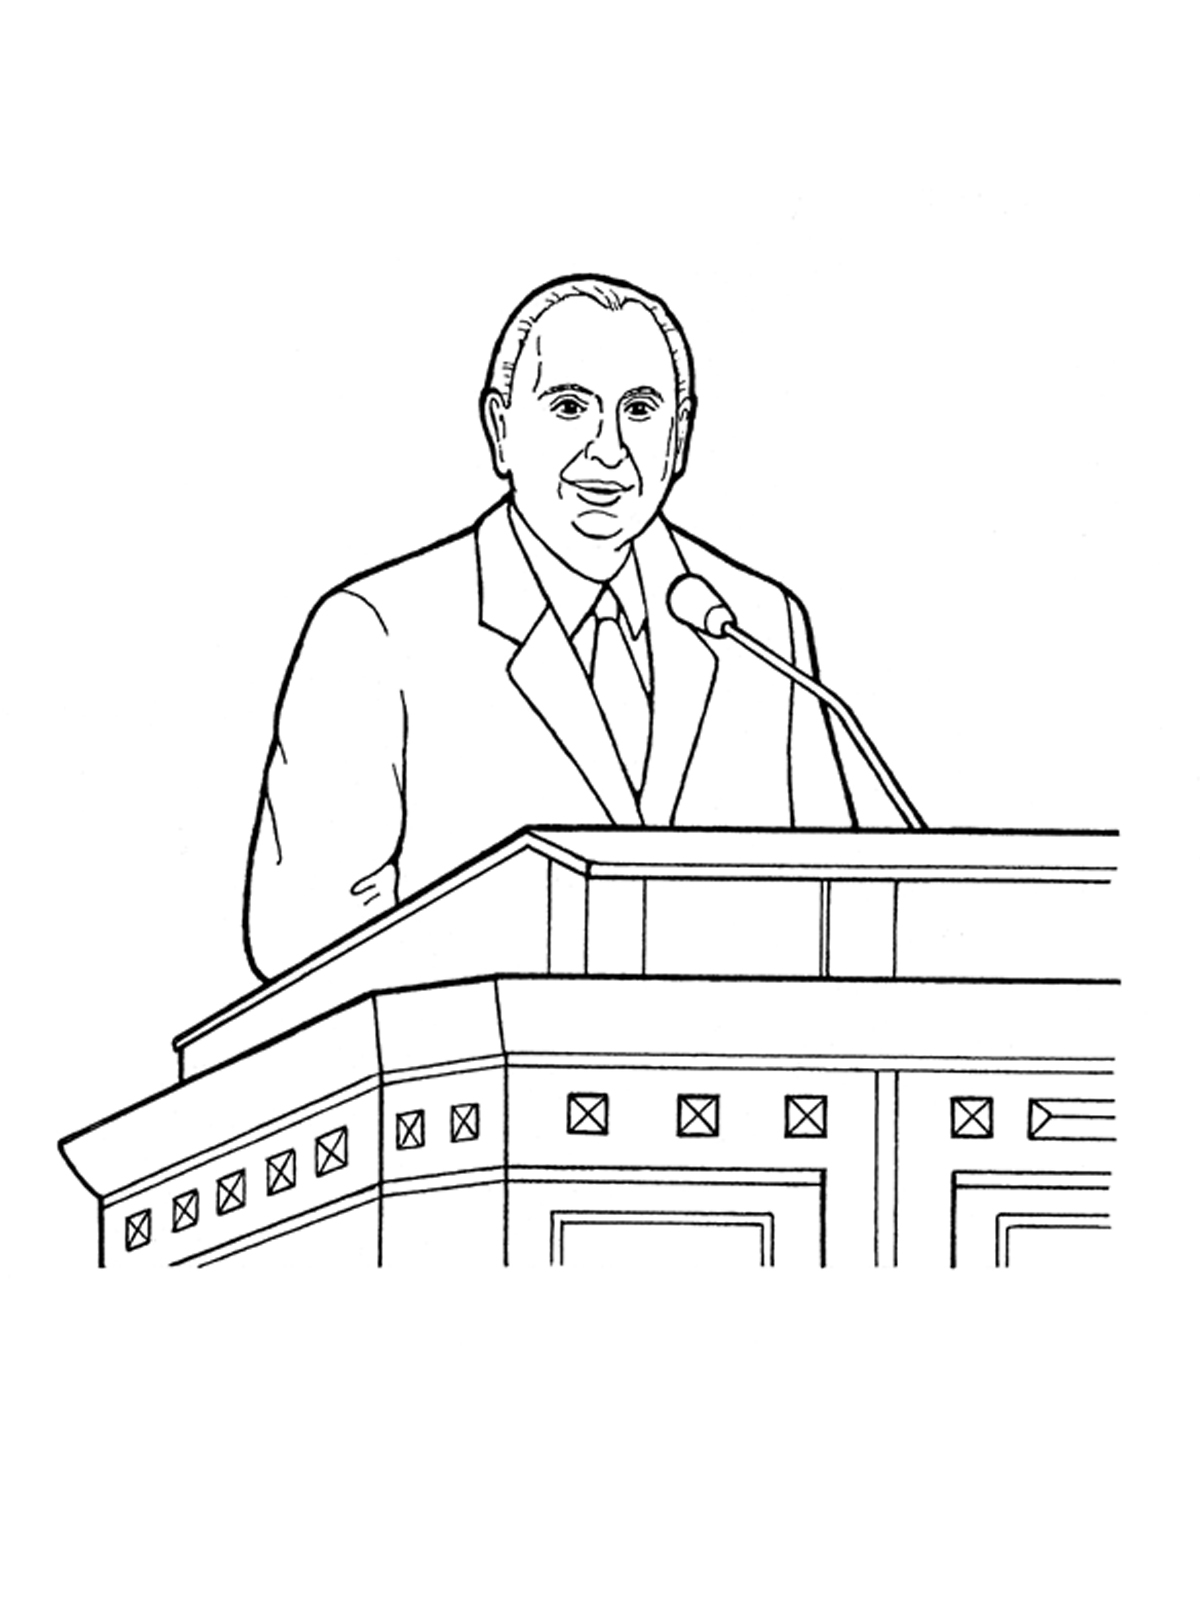 Thomas S. Monson Speaking at General Conference.